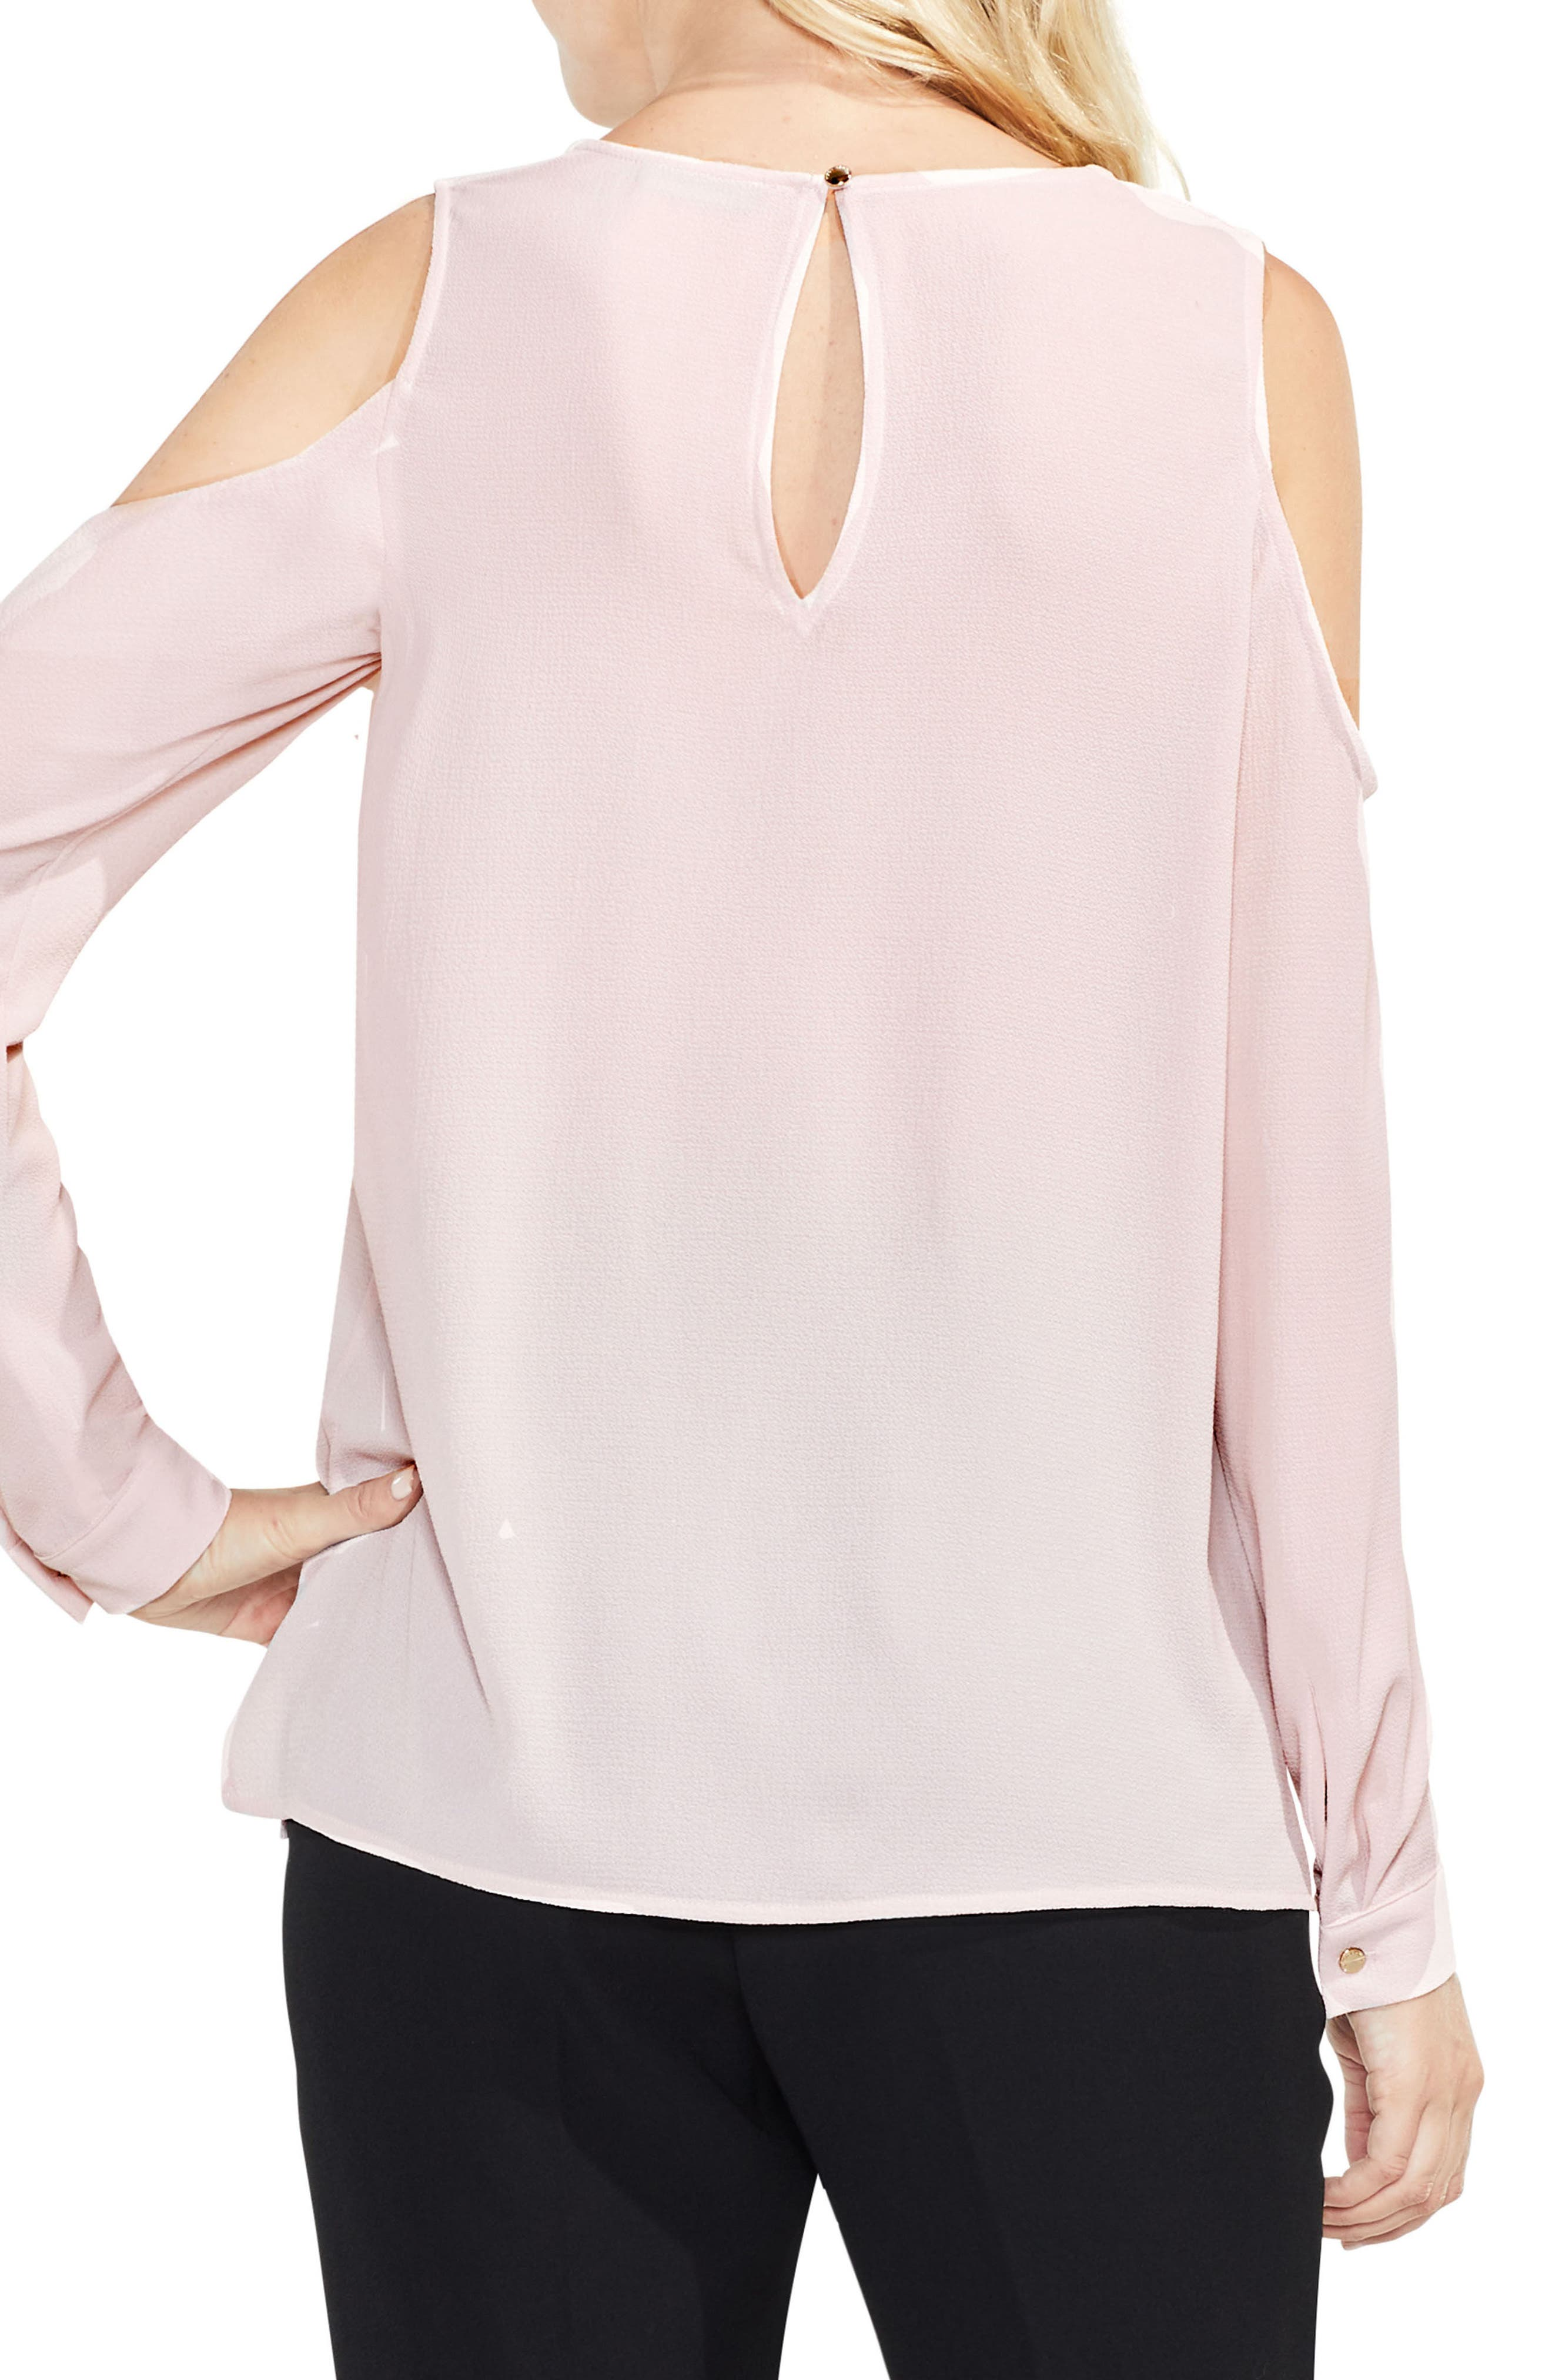 Alternate Image 2  - Vince Camuto Ruffle Cold Shoulder Top (Regular & Petite)